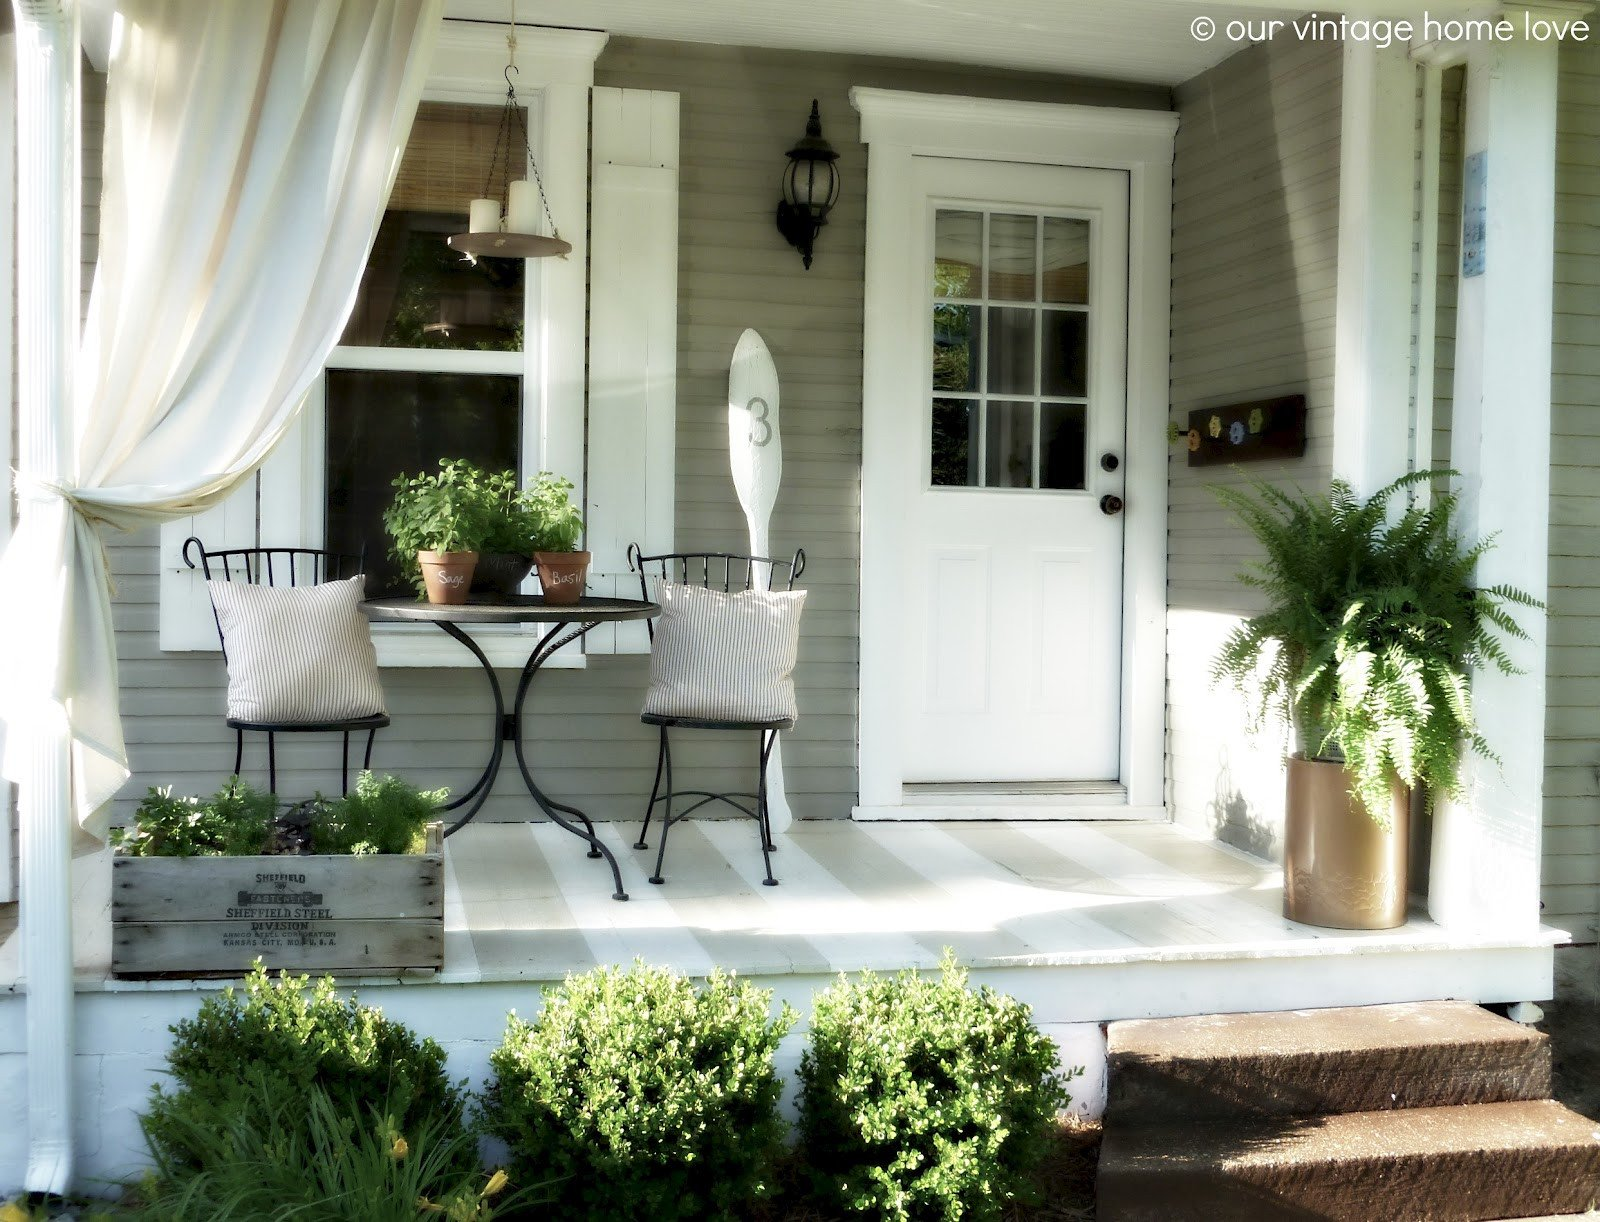 Small Front Porch Decor Ideas Awesome Vintage Home Love Back Side Porch Ideas for Summer and An Industrial Pipe Curtain Rod How to